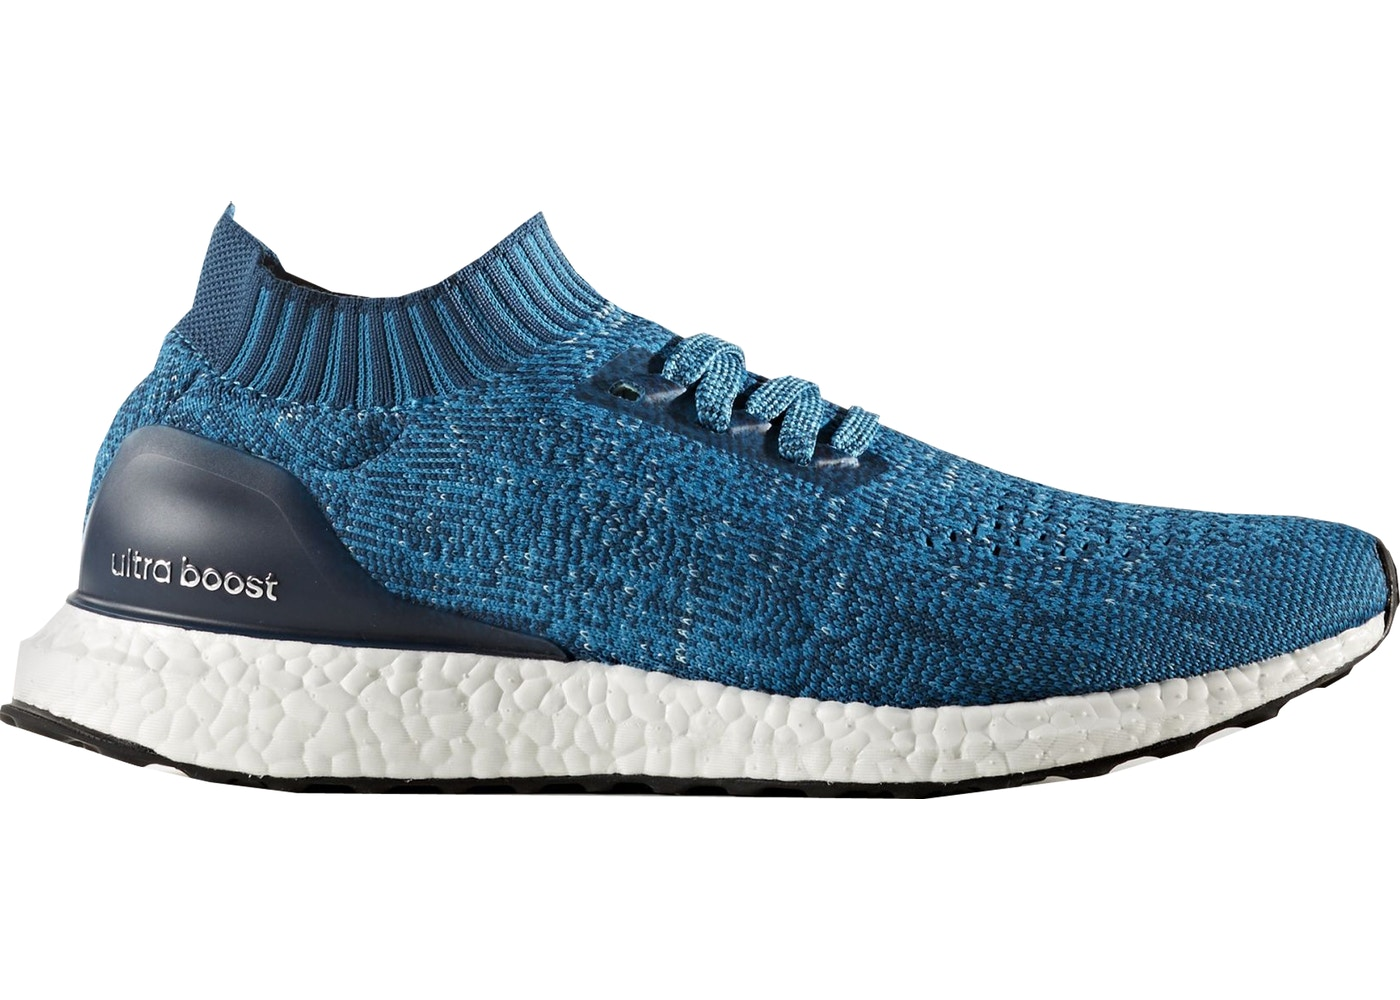 a8d9046e7f2 ... Night Mystery Petrol  low price sale 0f2fc 70dee adidas Ultra Boost  Shoes - New Lowest Asks ...